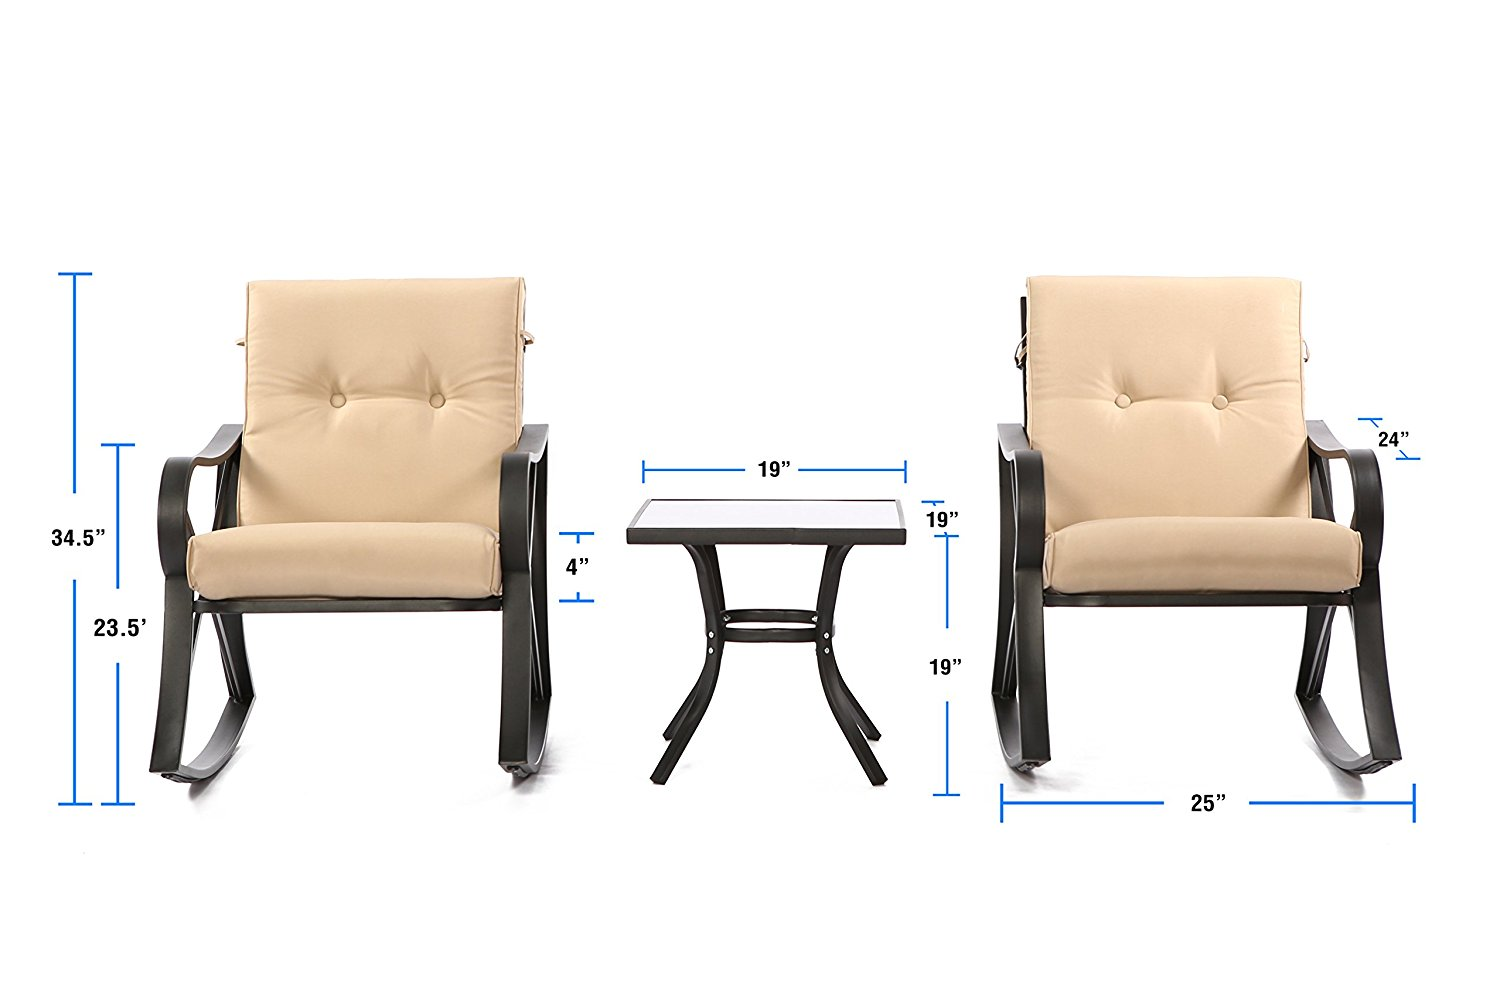 Luxury Furniture Review: OUTROAD 3 Piece Patio Set- All